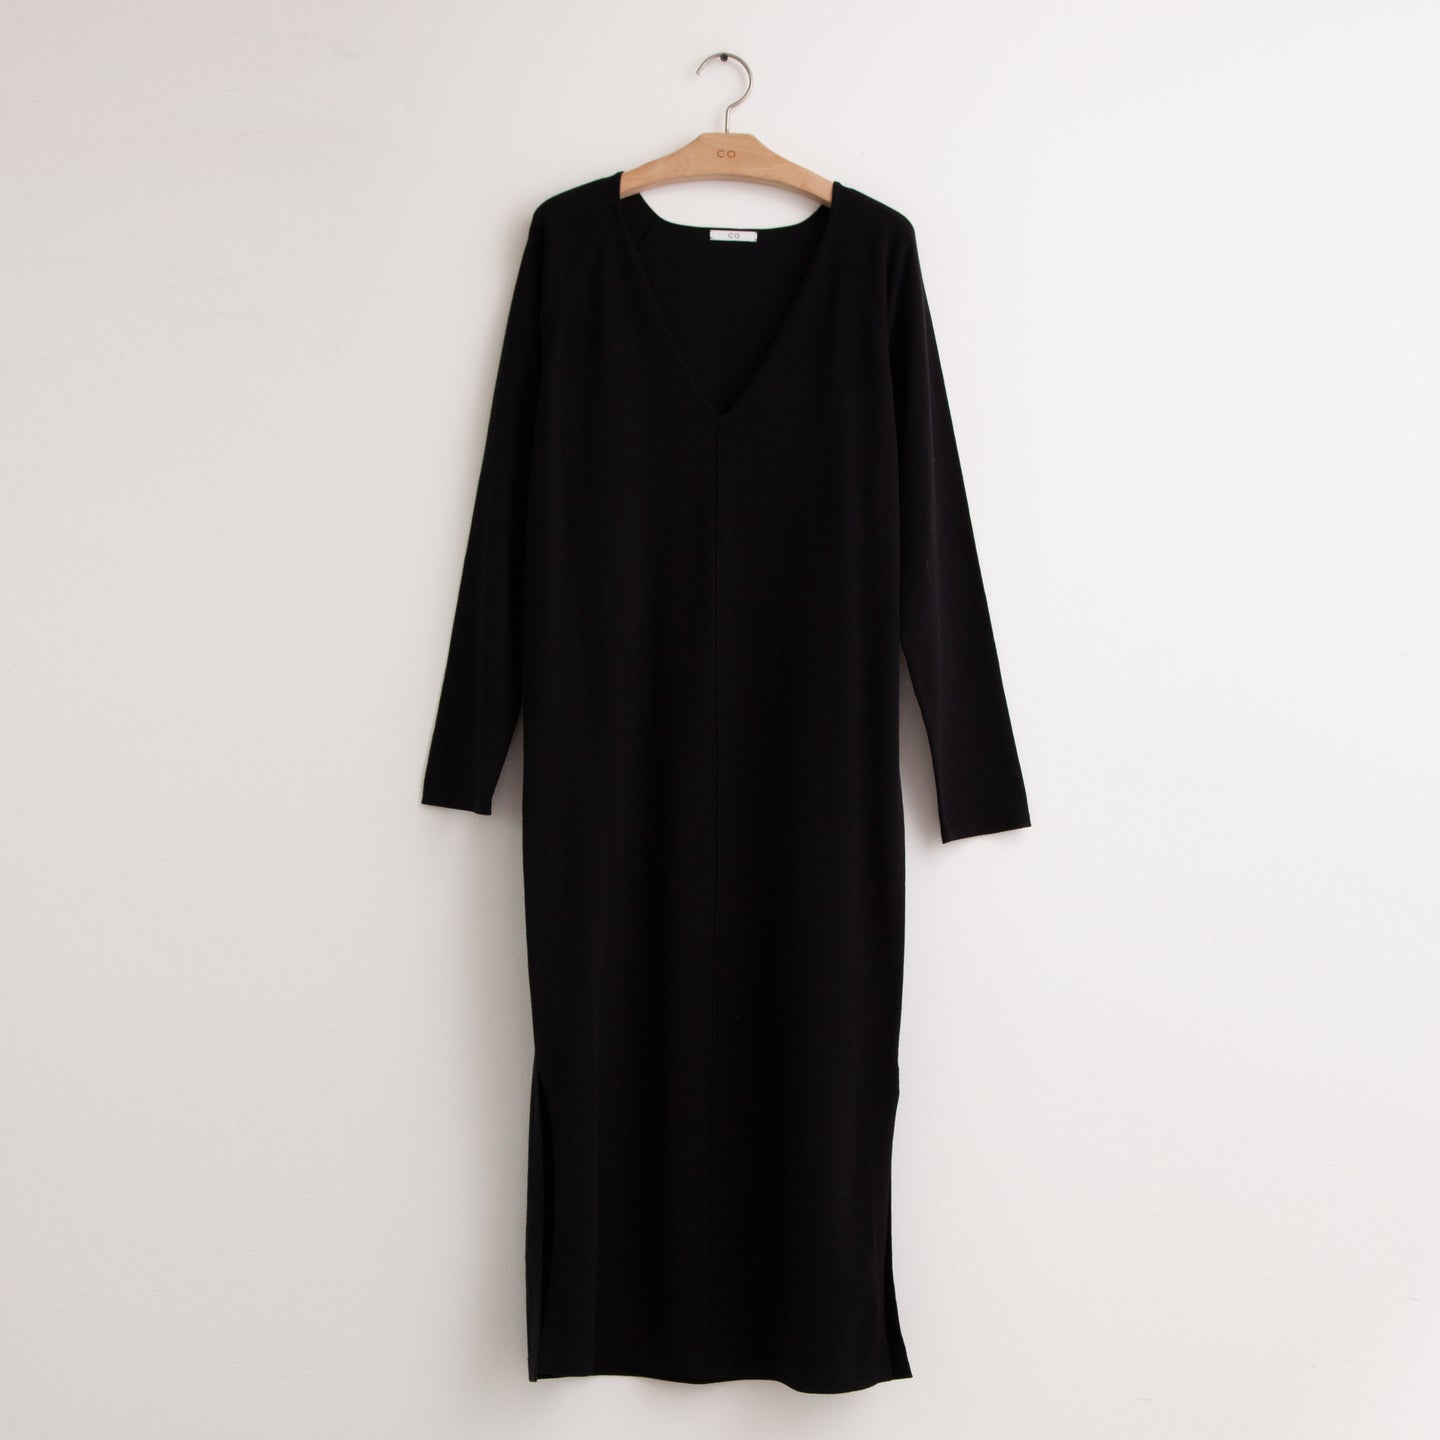 Long sleeve v neck knit dress with front seam detail in black compact viscose - CO